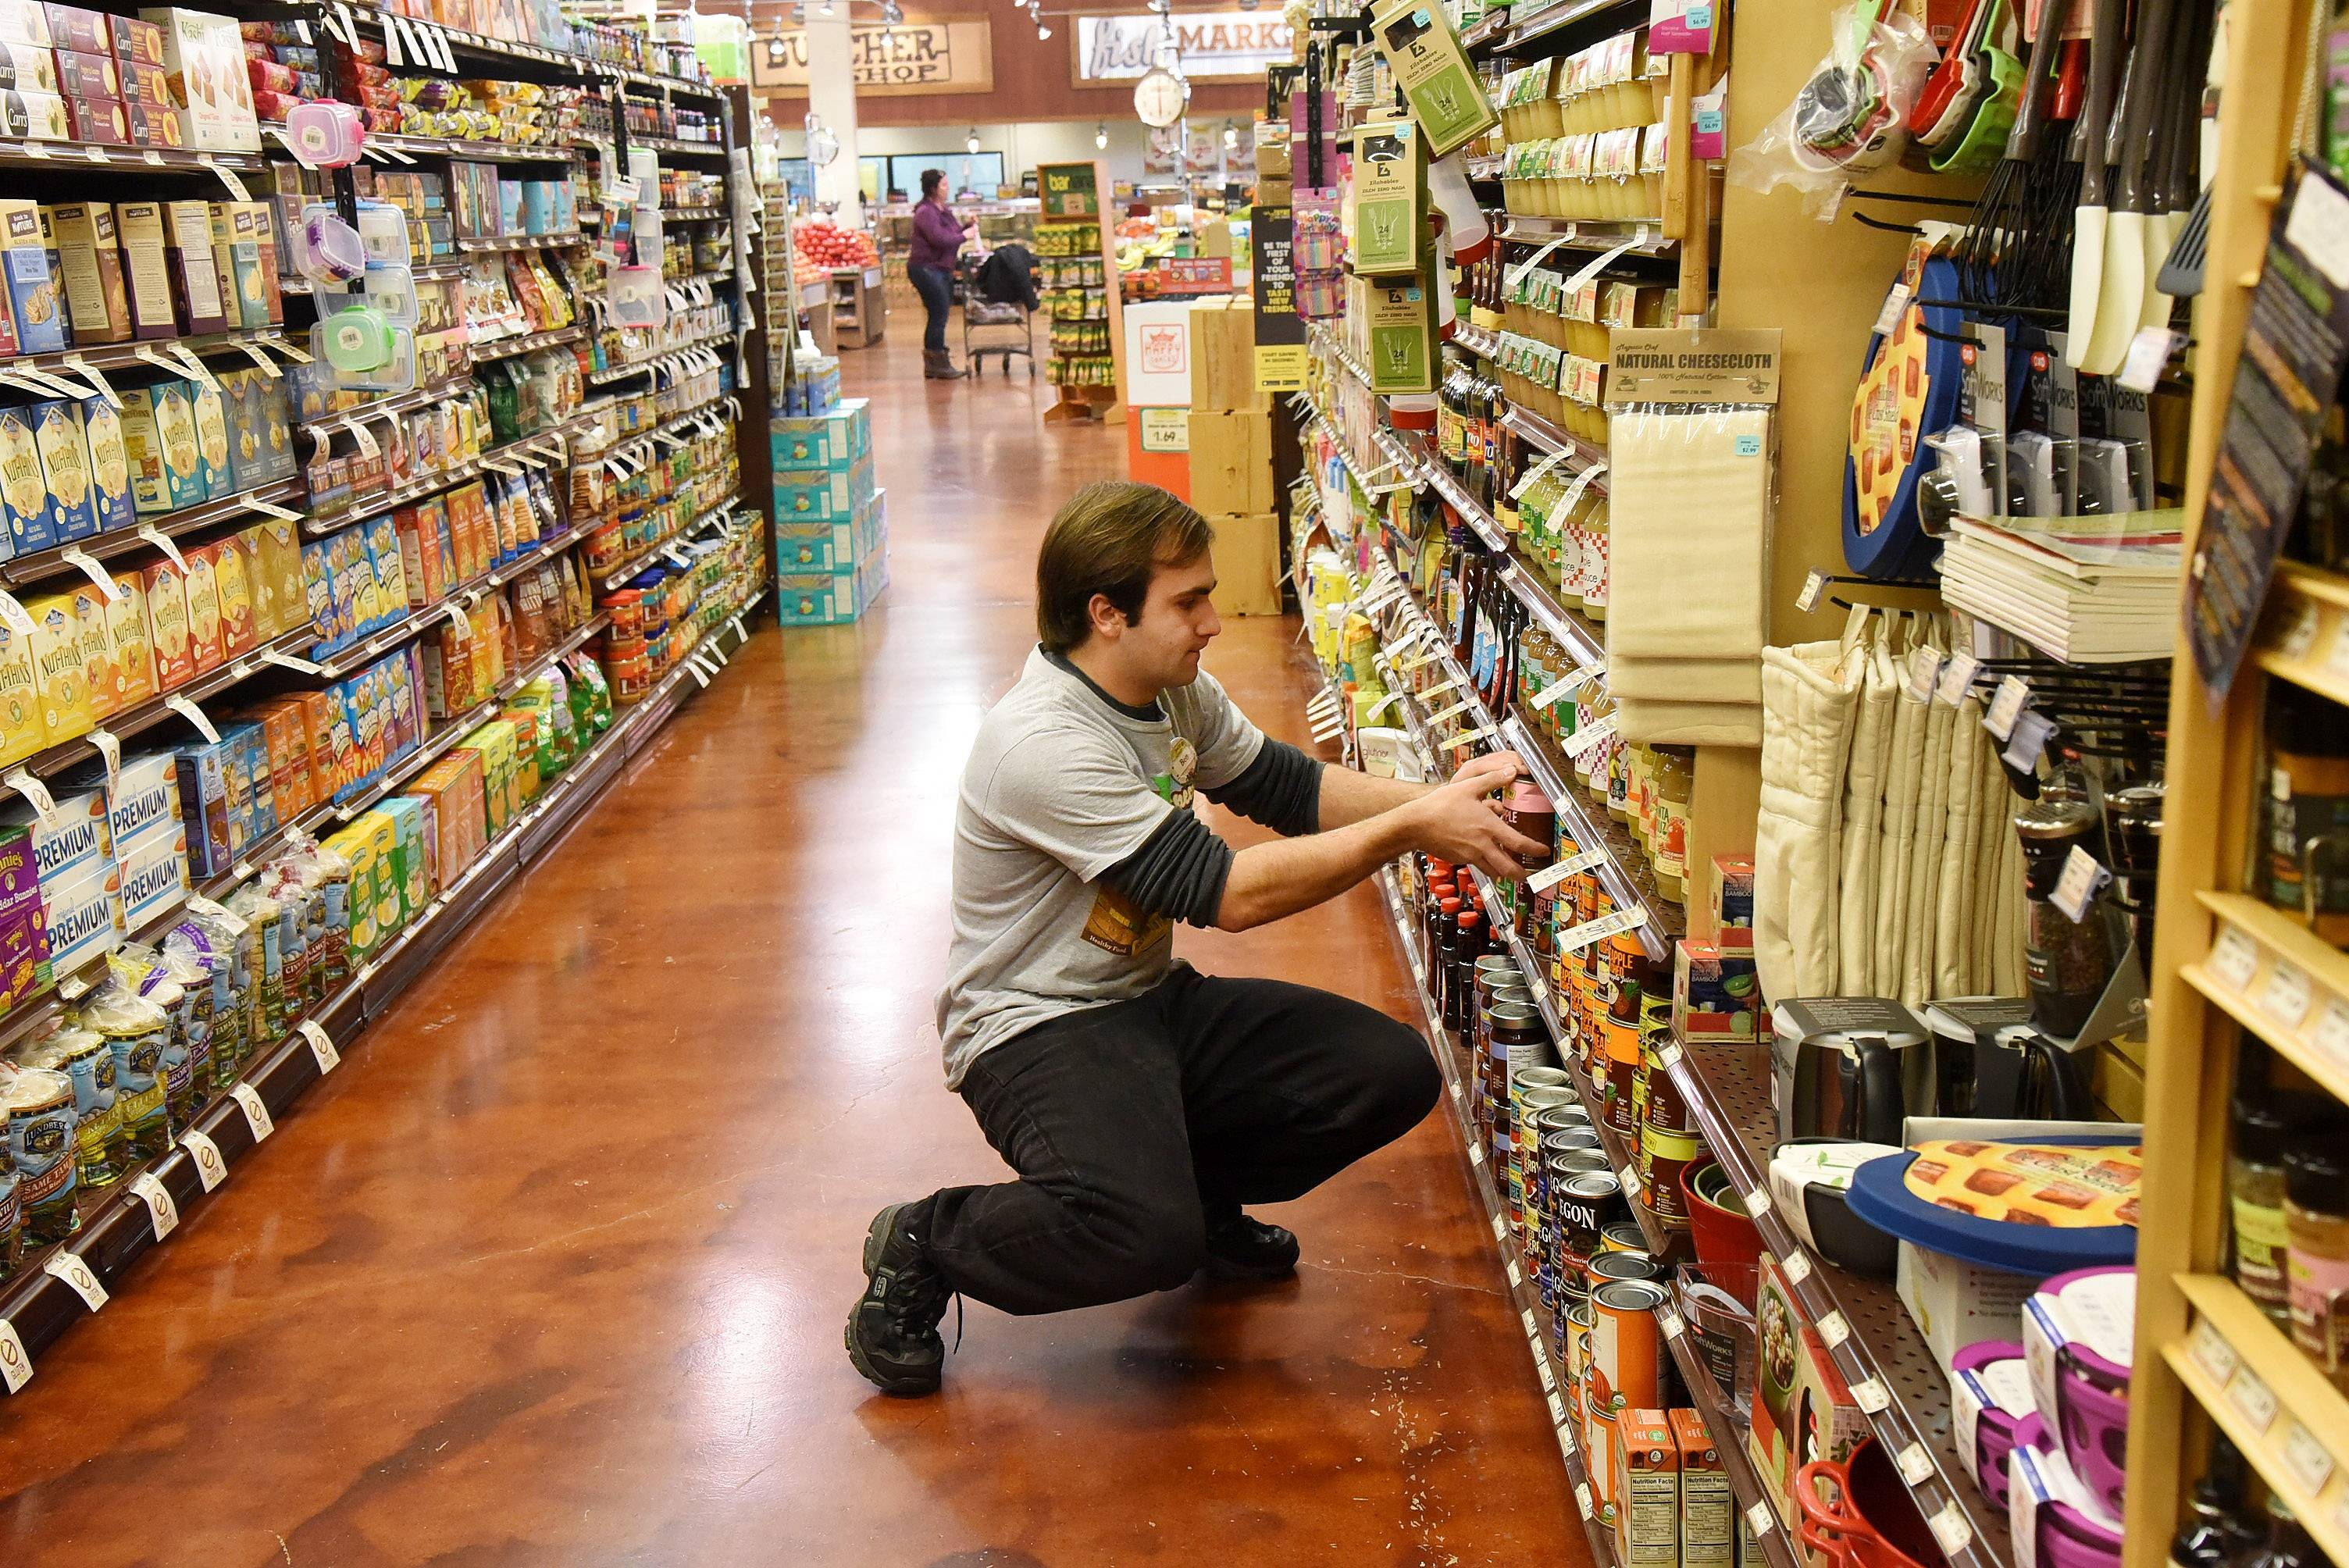 Not only did Ben Nicholas learn social skills through his part-time job at Fresh Thyme Farmers Market in Mount Prospect, the 22-year-old man with autism says he had fun, made friends and even came up with an improvised device to straighten jars in the spice rack.